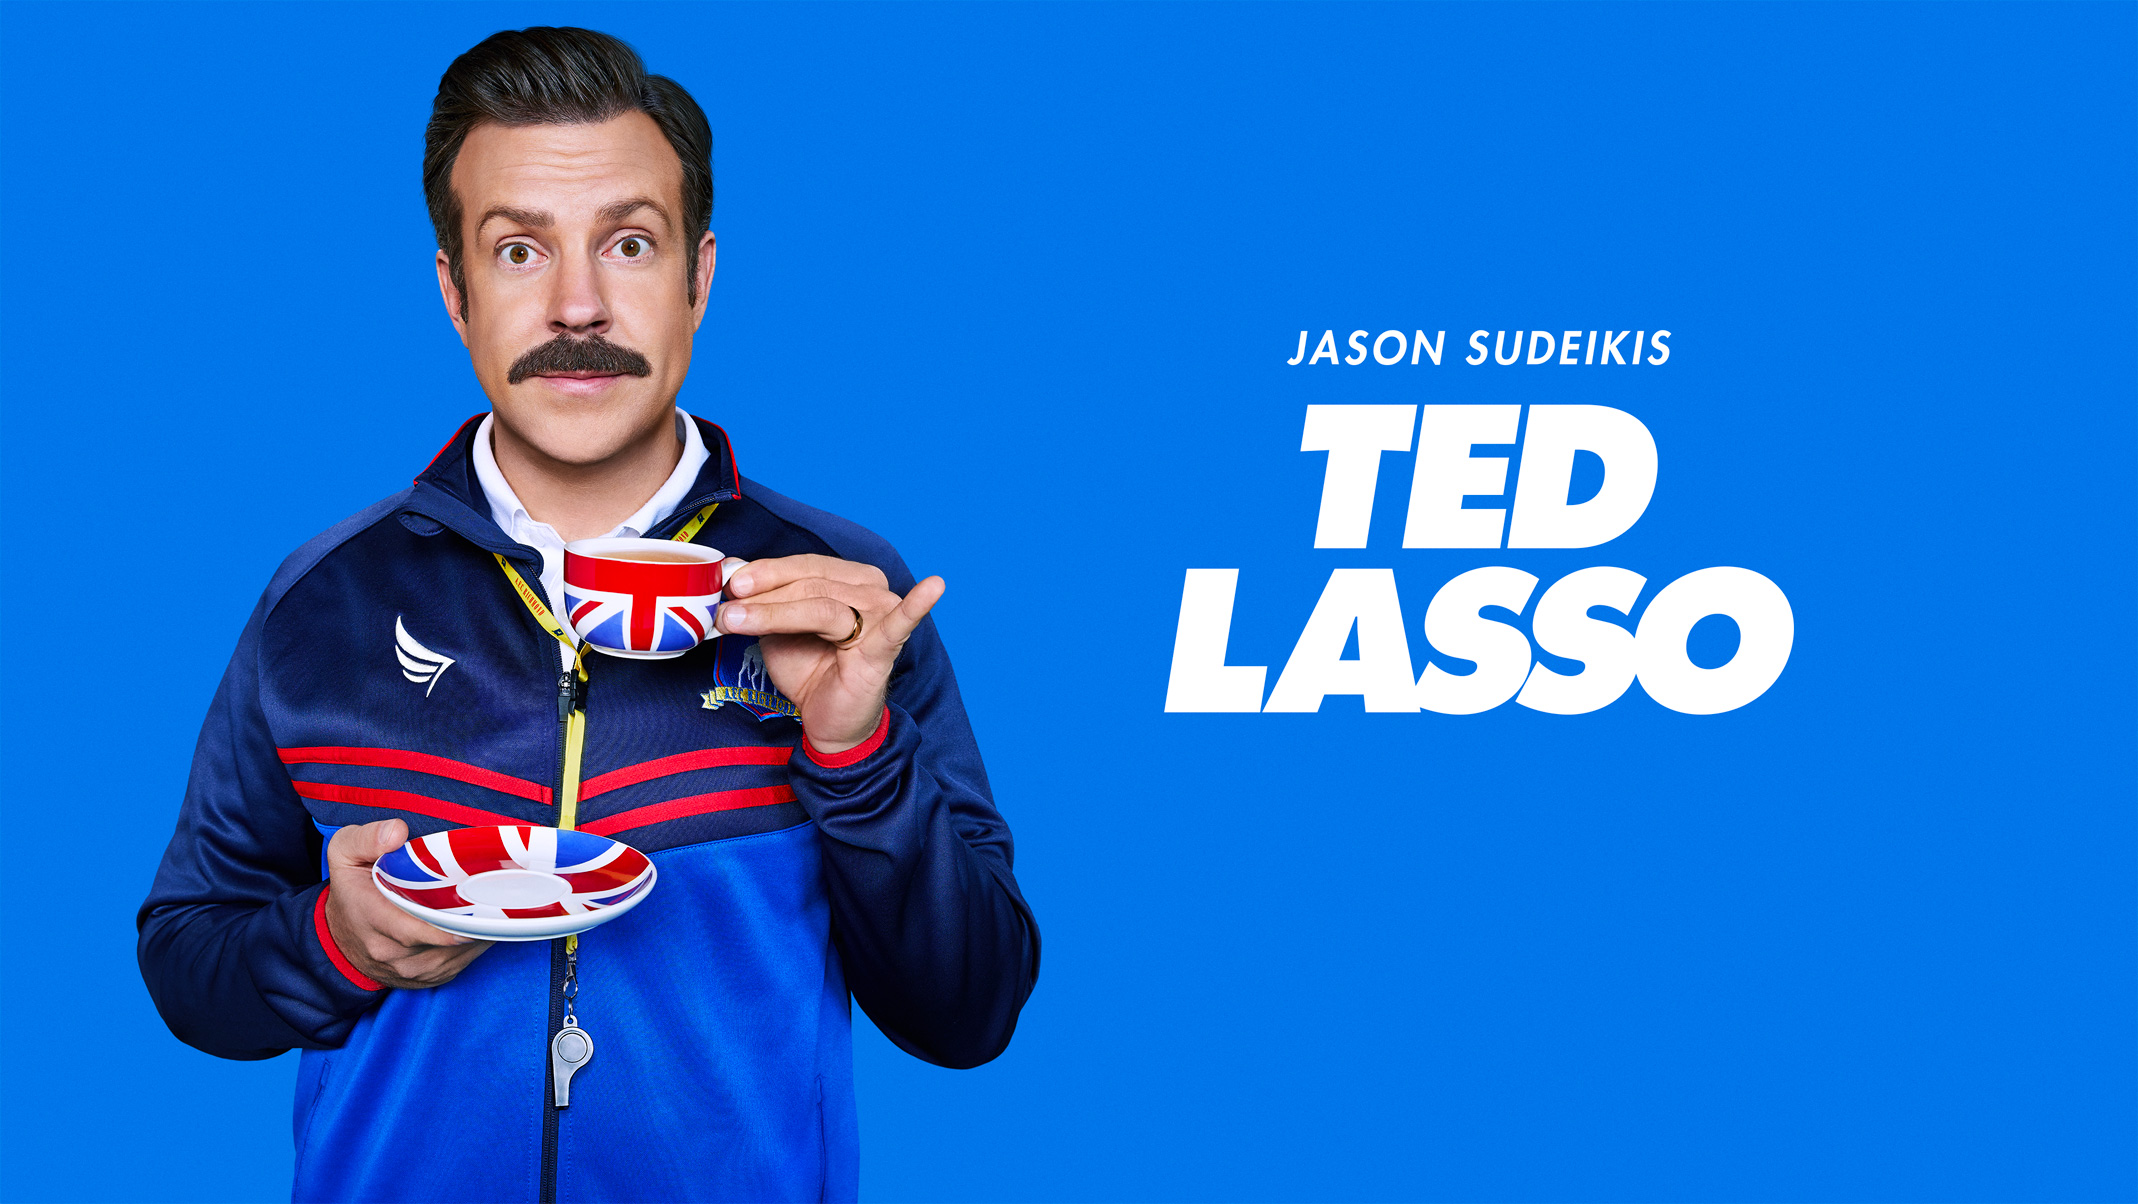 Ted Lasso - Apple TV+ Press